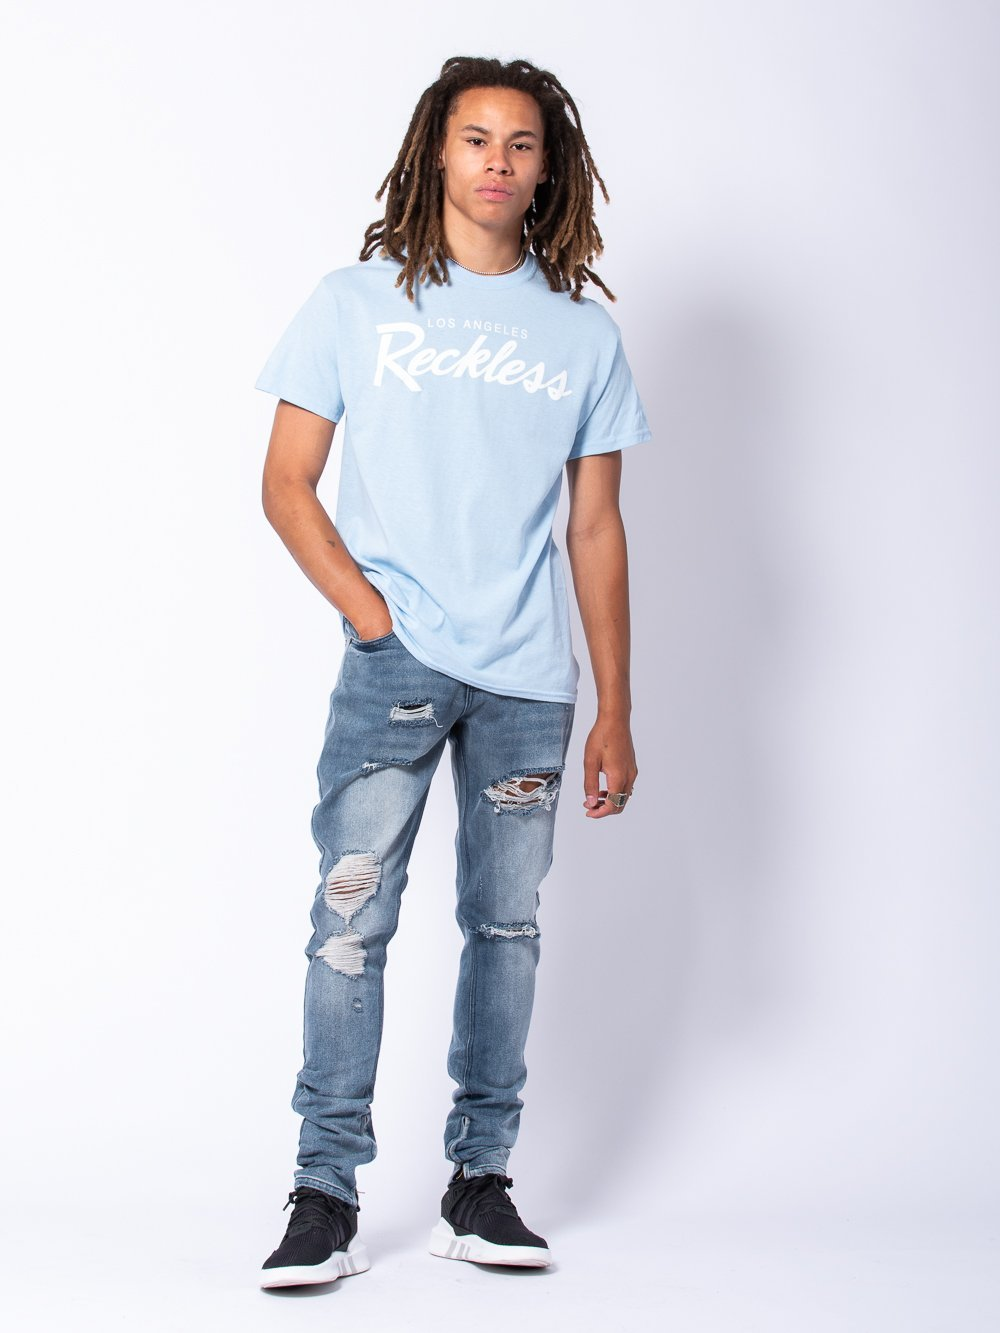 Young and Reckless Mens - Tees - Graphic Tee OG Reckless Tee - Light Blue